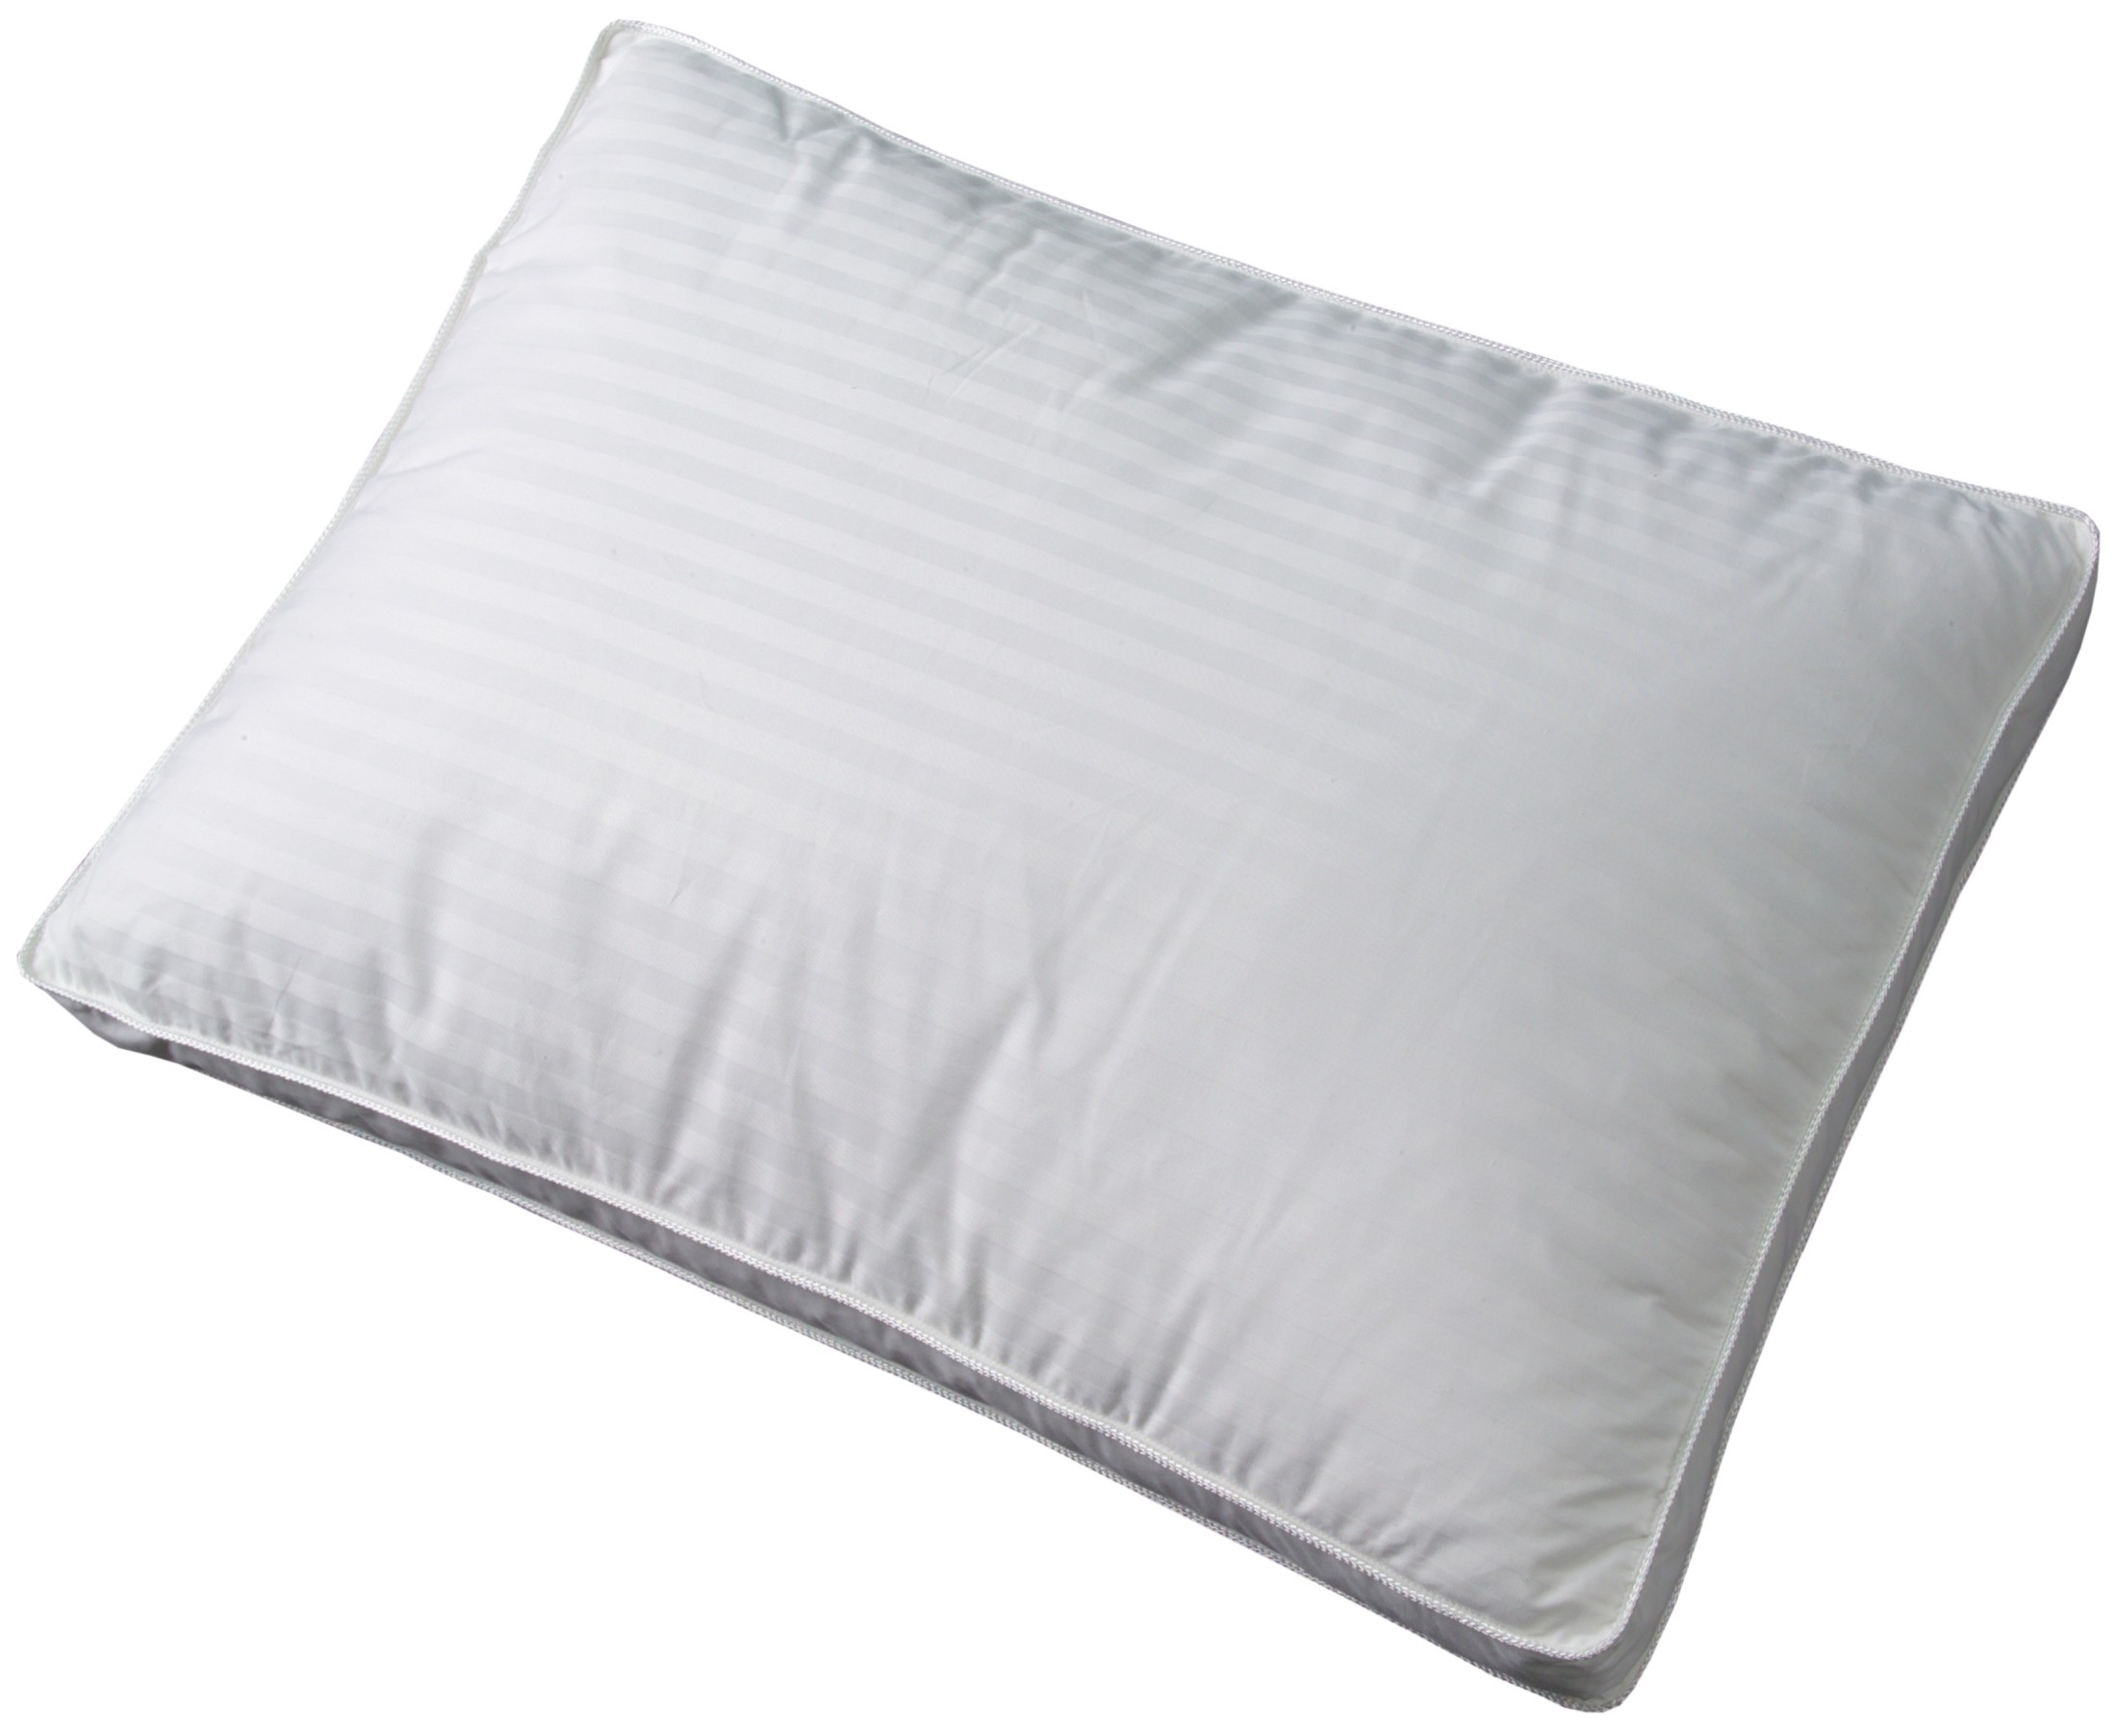 The pillowcase is generally about 4 inches longer than the pillow itself. A standard size pillow is 20 inches by 26 inches, and a queen size pillow is 20 by 30 inches. Both sizes fit in a standard-sized pillowcase. A king size pillow is 20 inches by 30 inches and fits in a king size pillowcase.